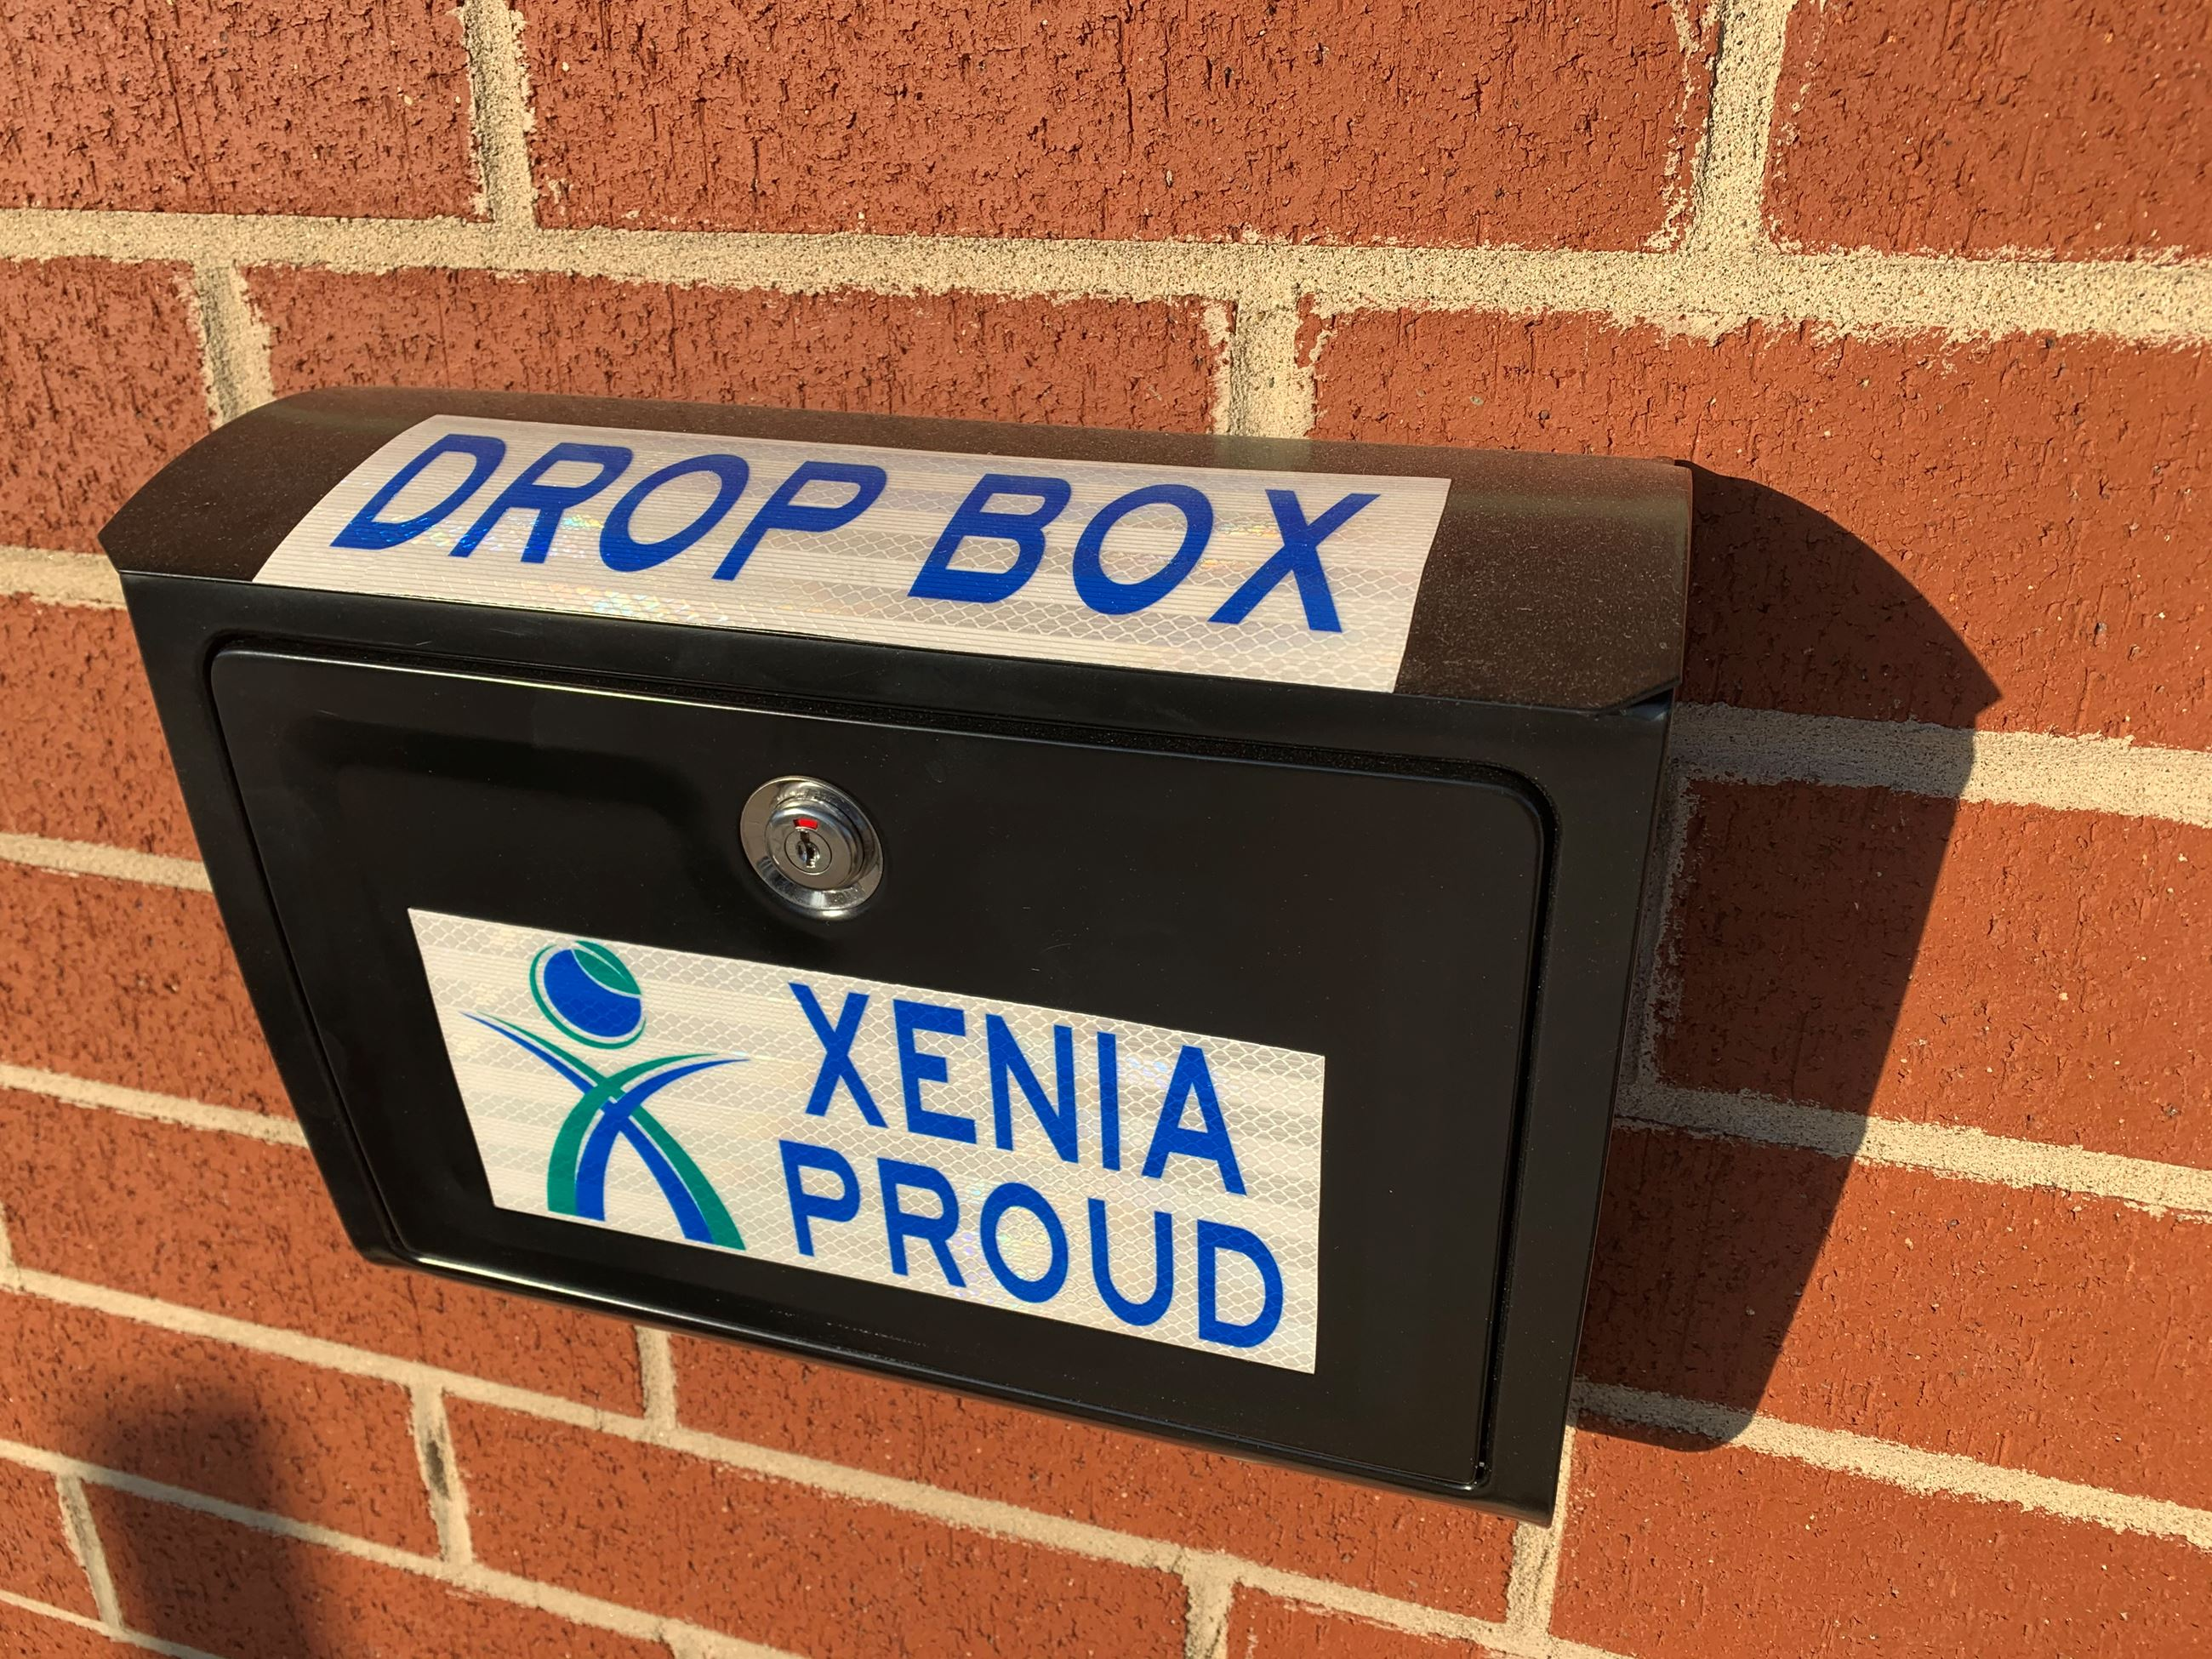 Xenia Proud Initiative